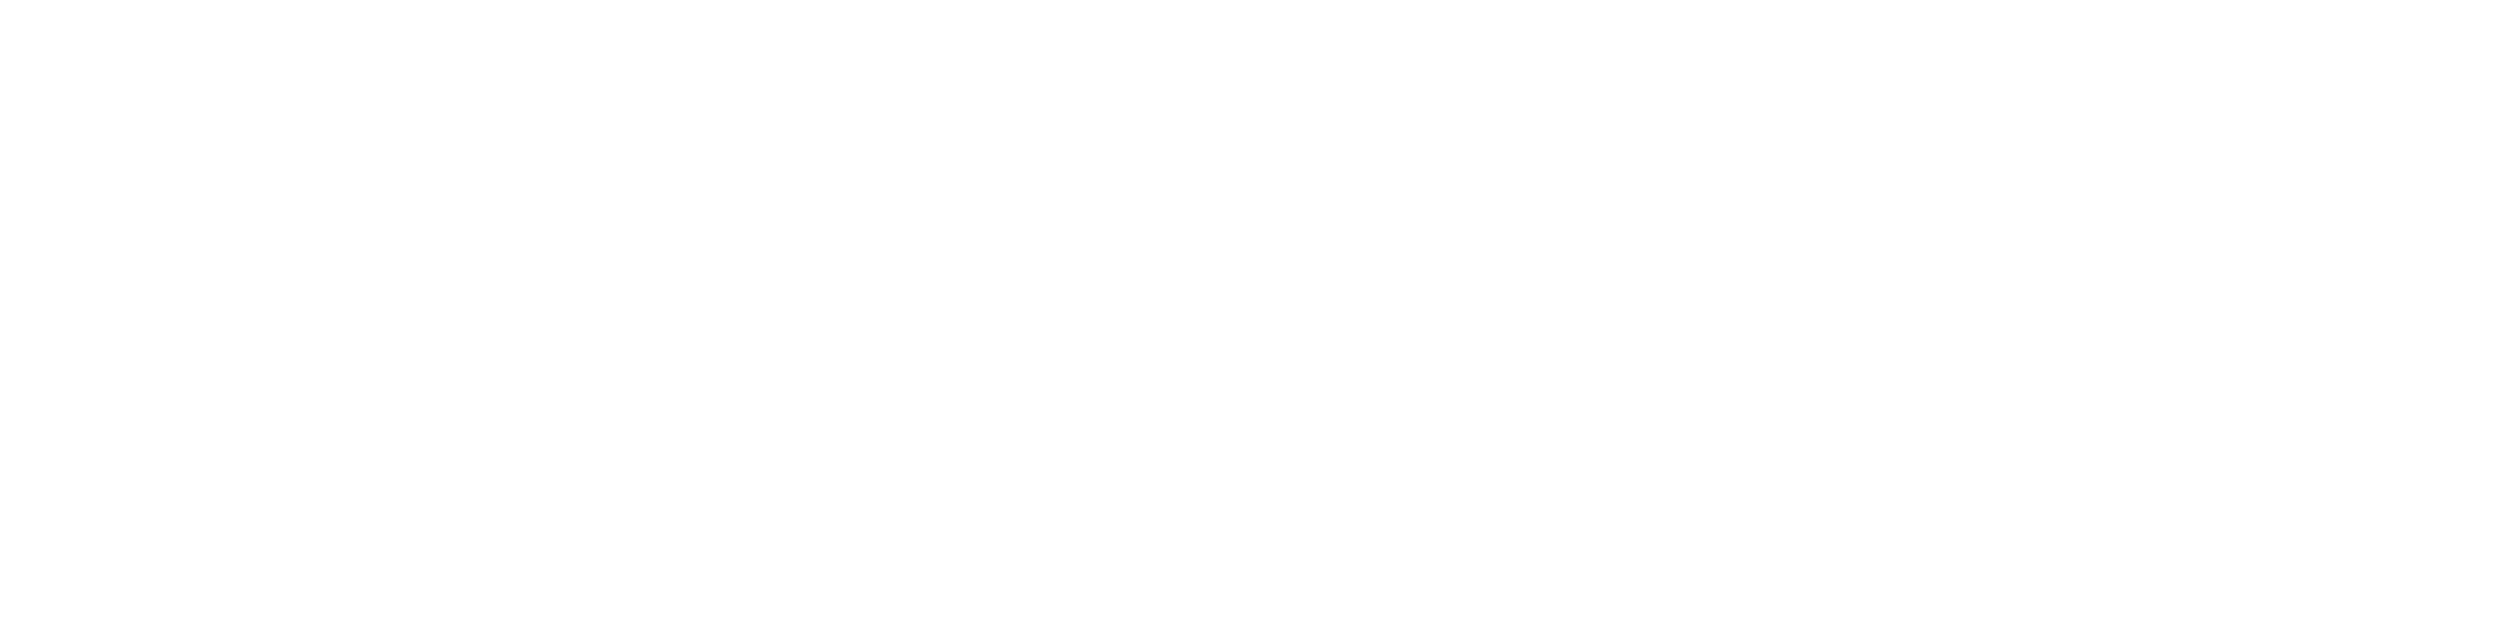 Forum Ministry white.png